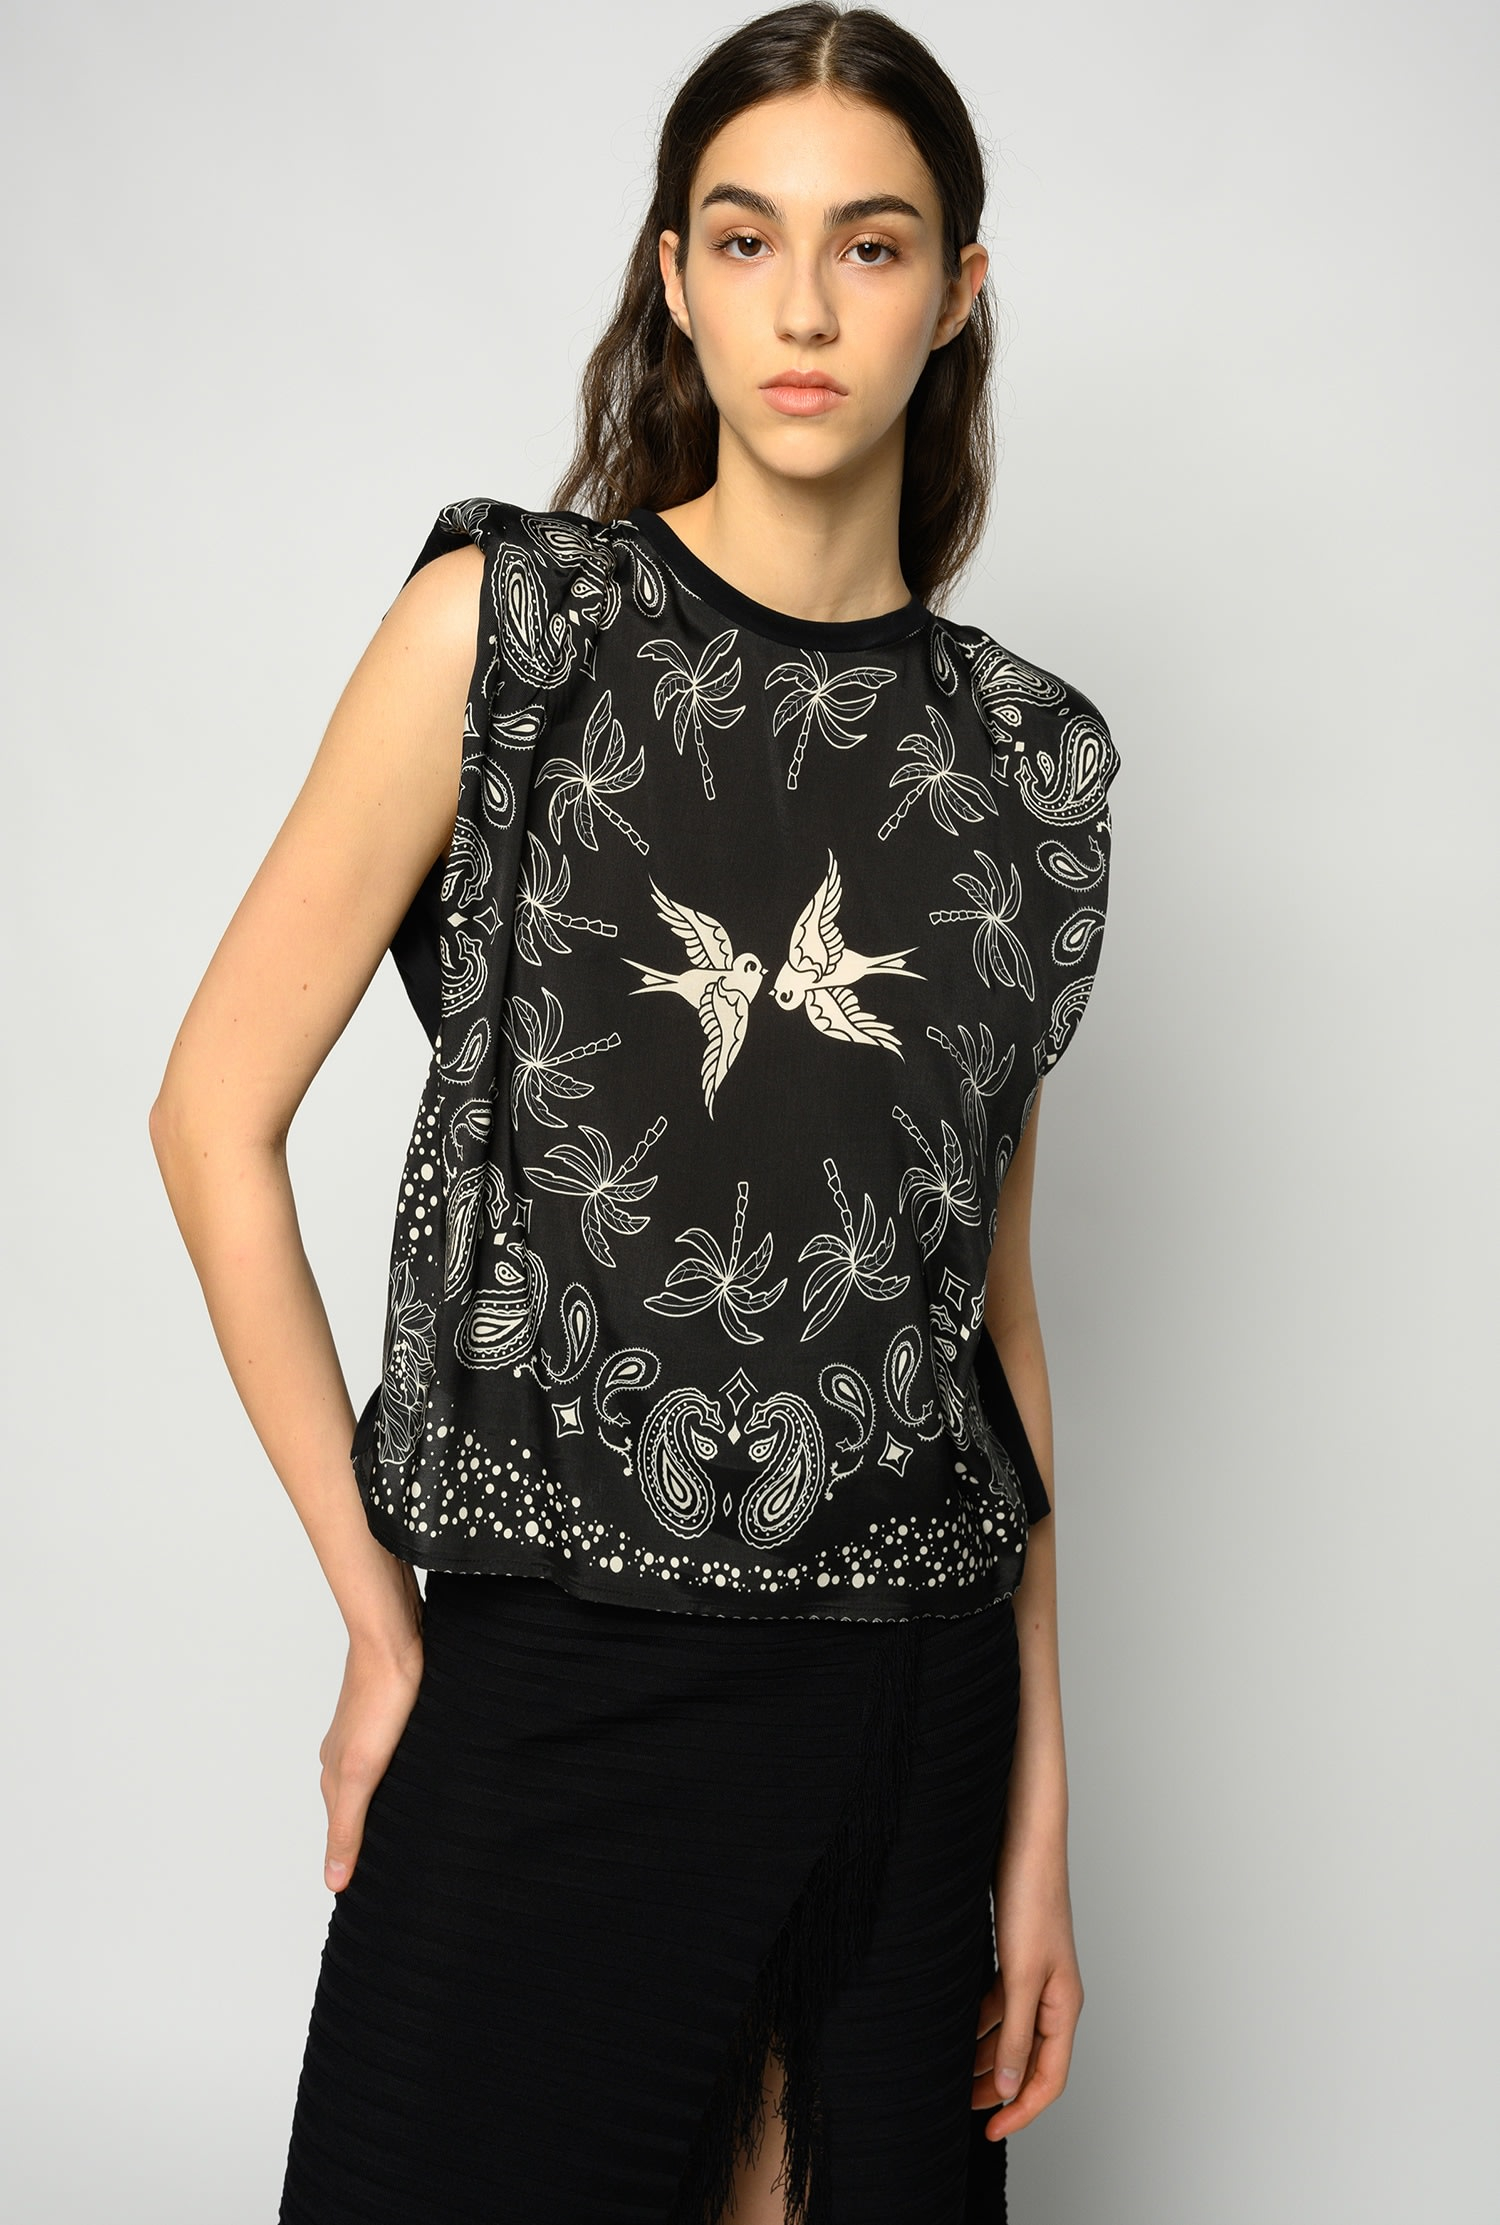 SHOPPING ON LINE PINKO TOP STAMPA BANDANA ACQUA E SALE NEW COLLECTION WOMEN'S SPRING SUMMER 2021